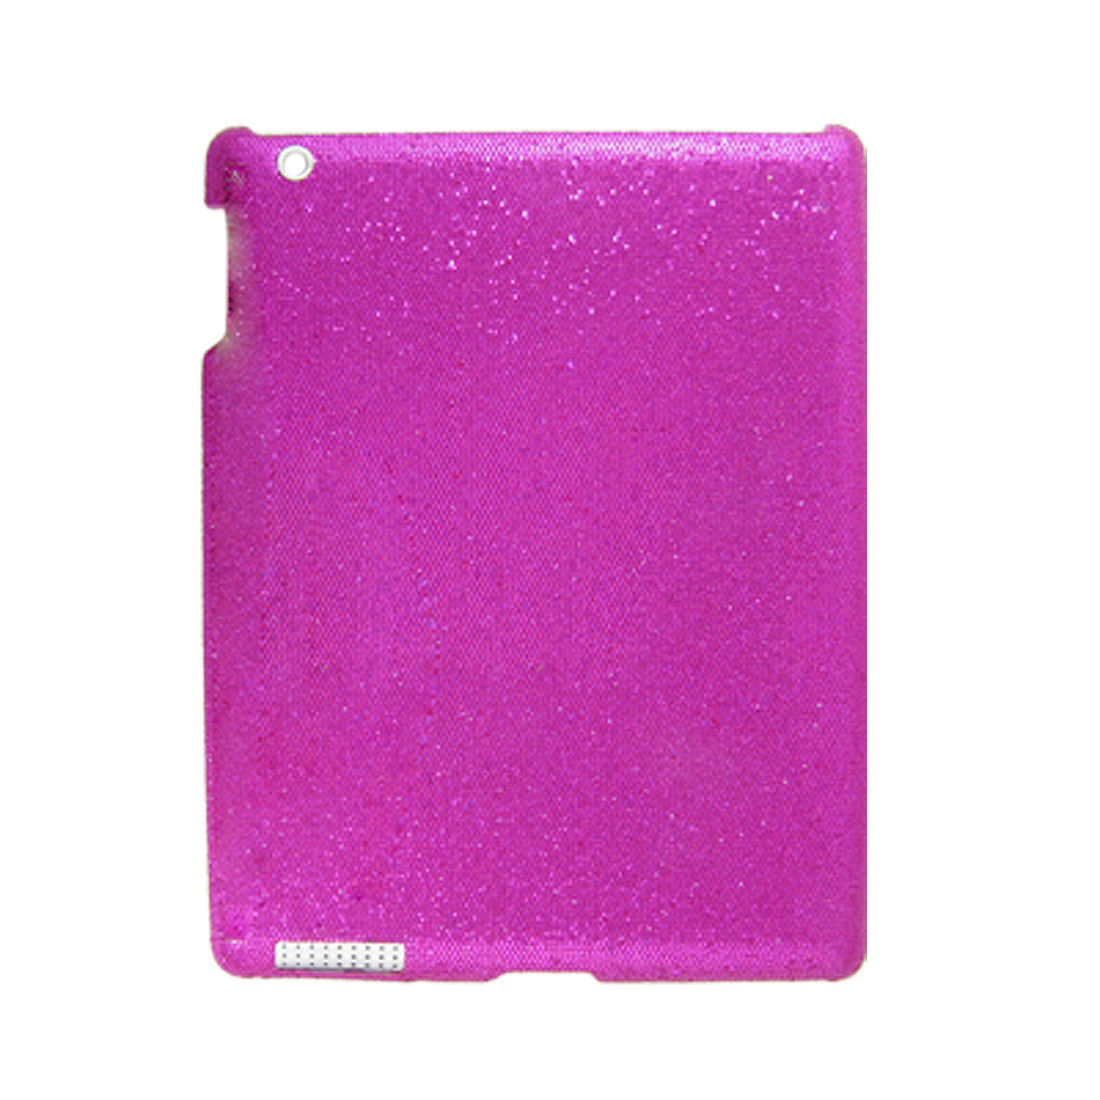 Magenta Hard Plastic Faux Leather Coated Glittery Back Case for iPad 2G